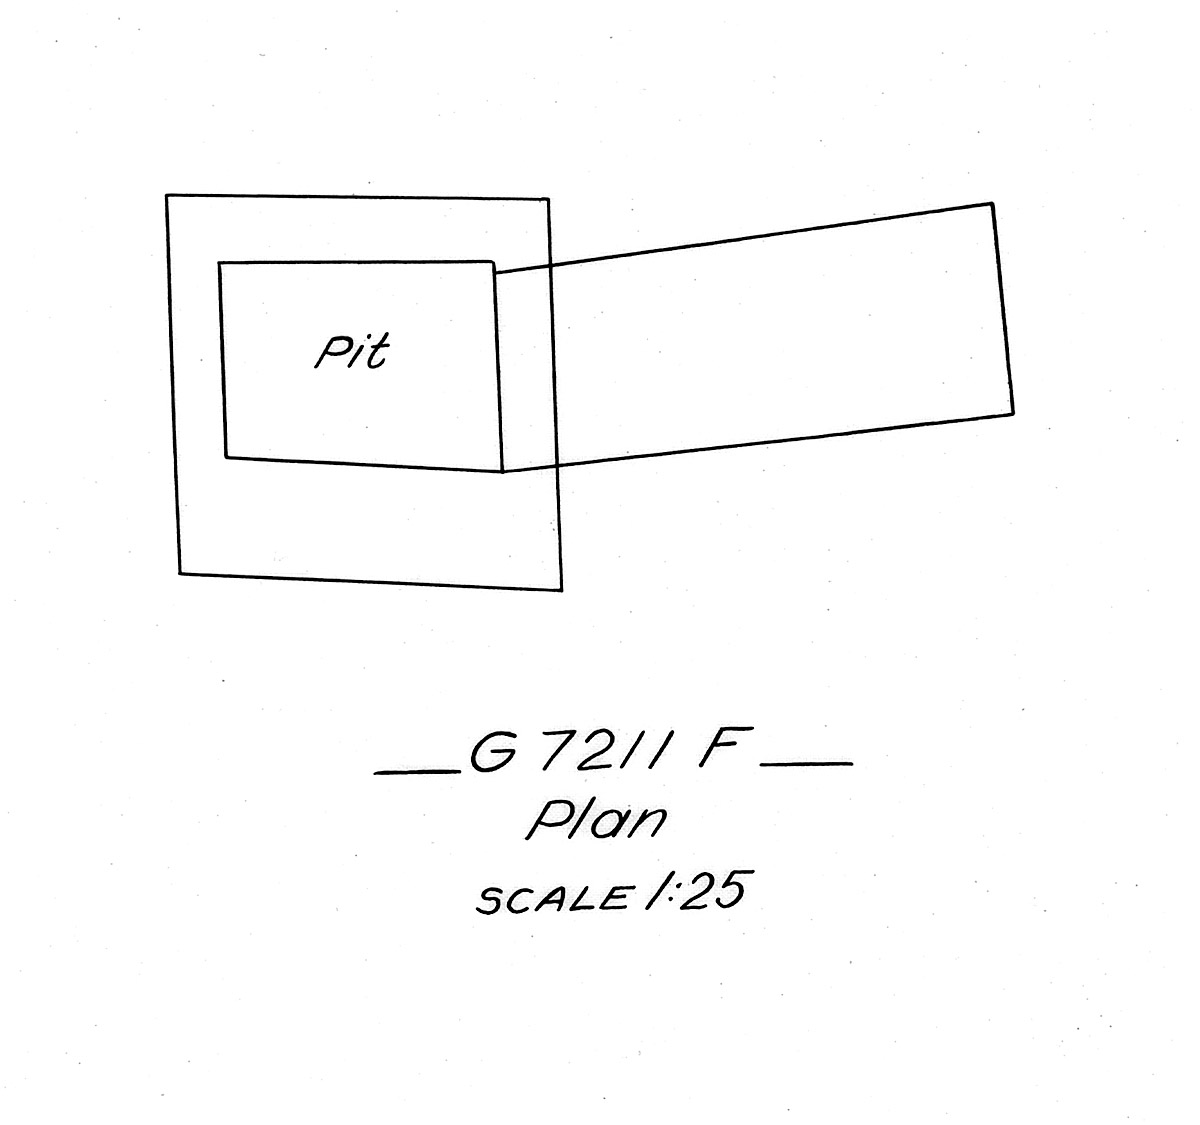 Maps and plans: G 7211, Shaft F